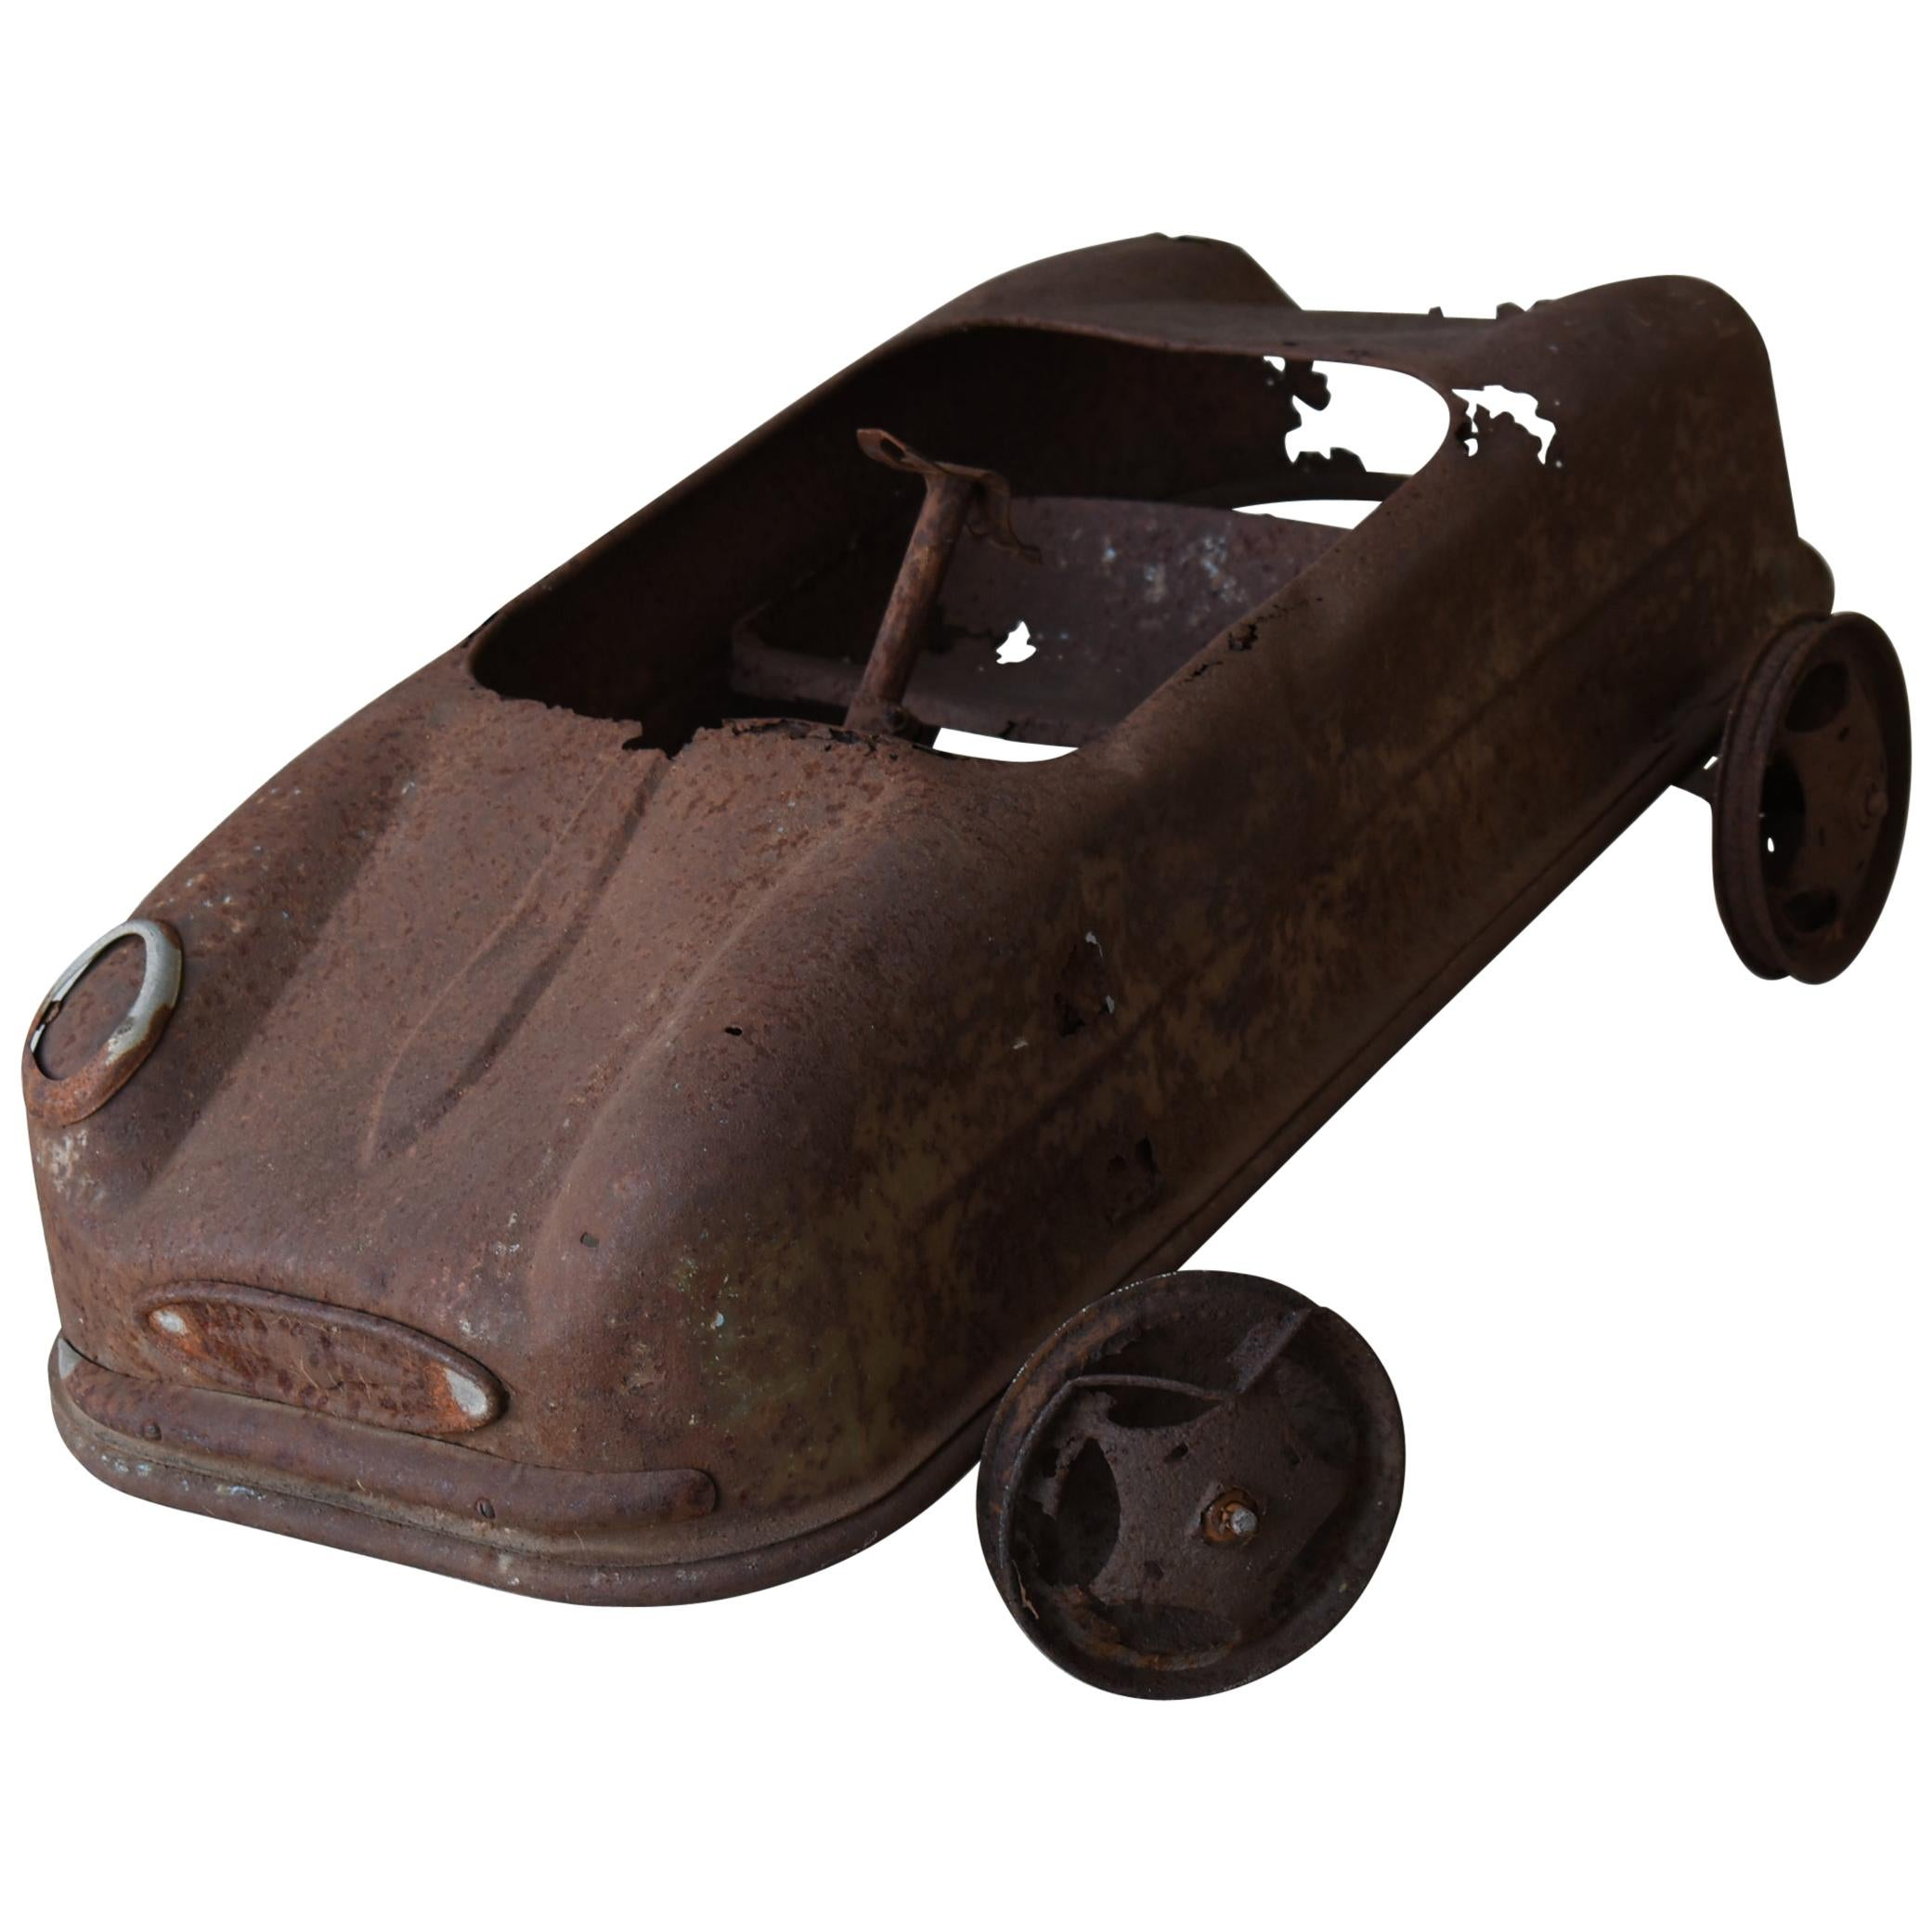 Japanese Rusted Car Toys/Antique Figurine Object Contemporary Art Wabisabi